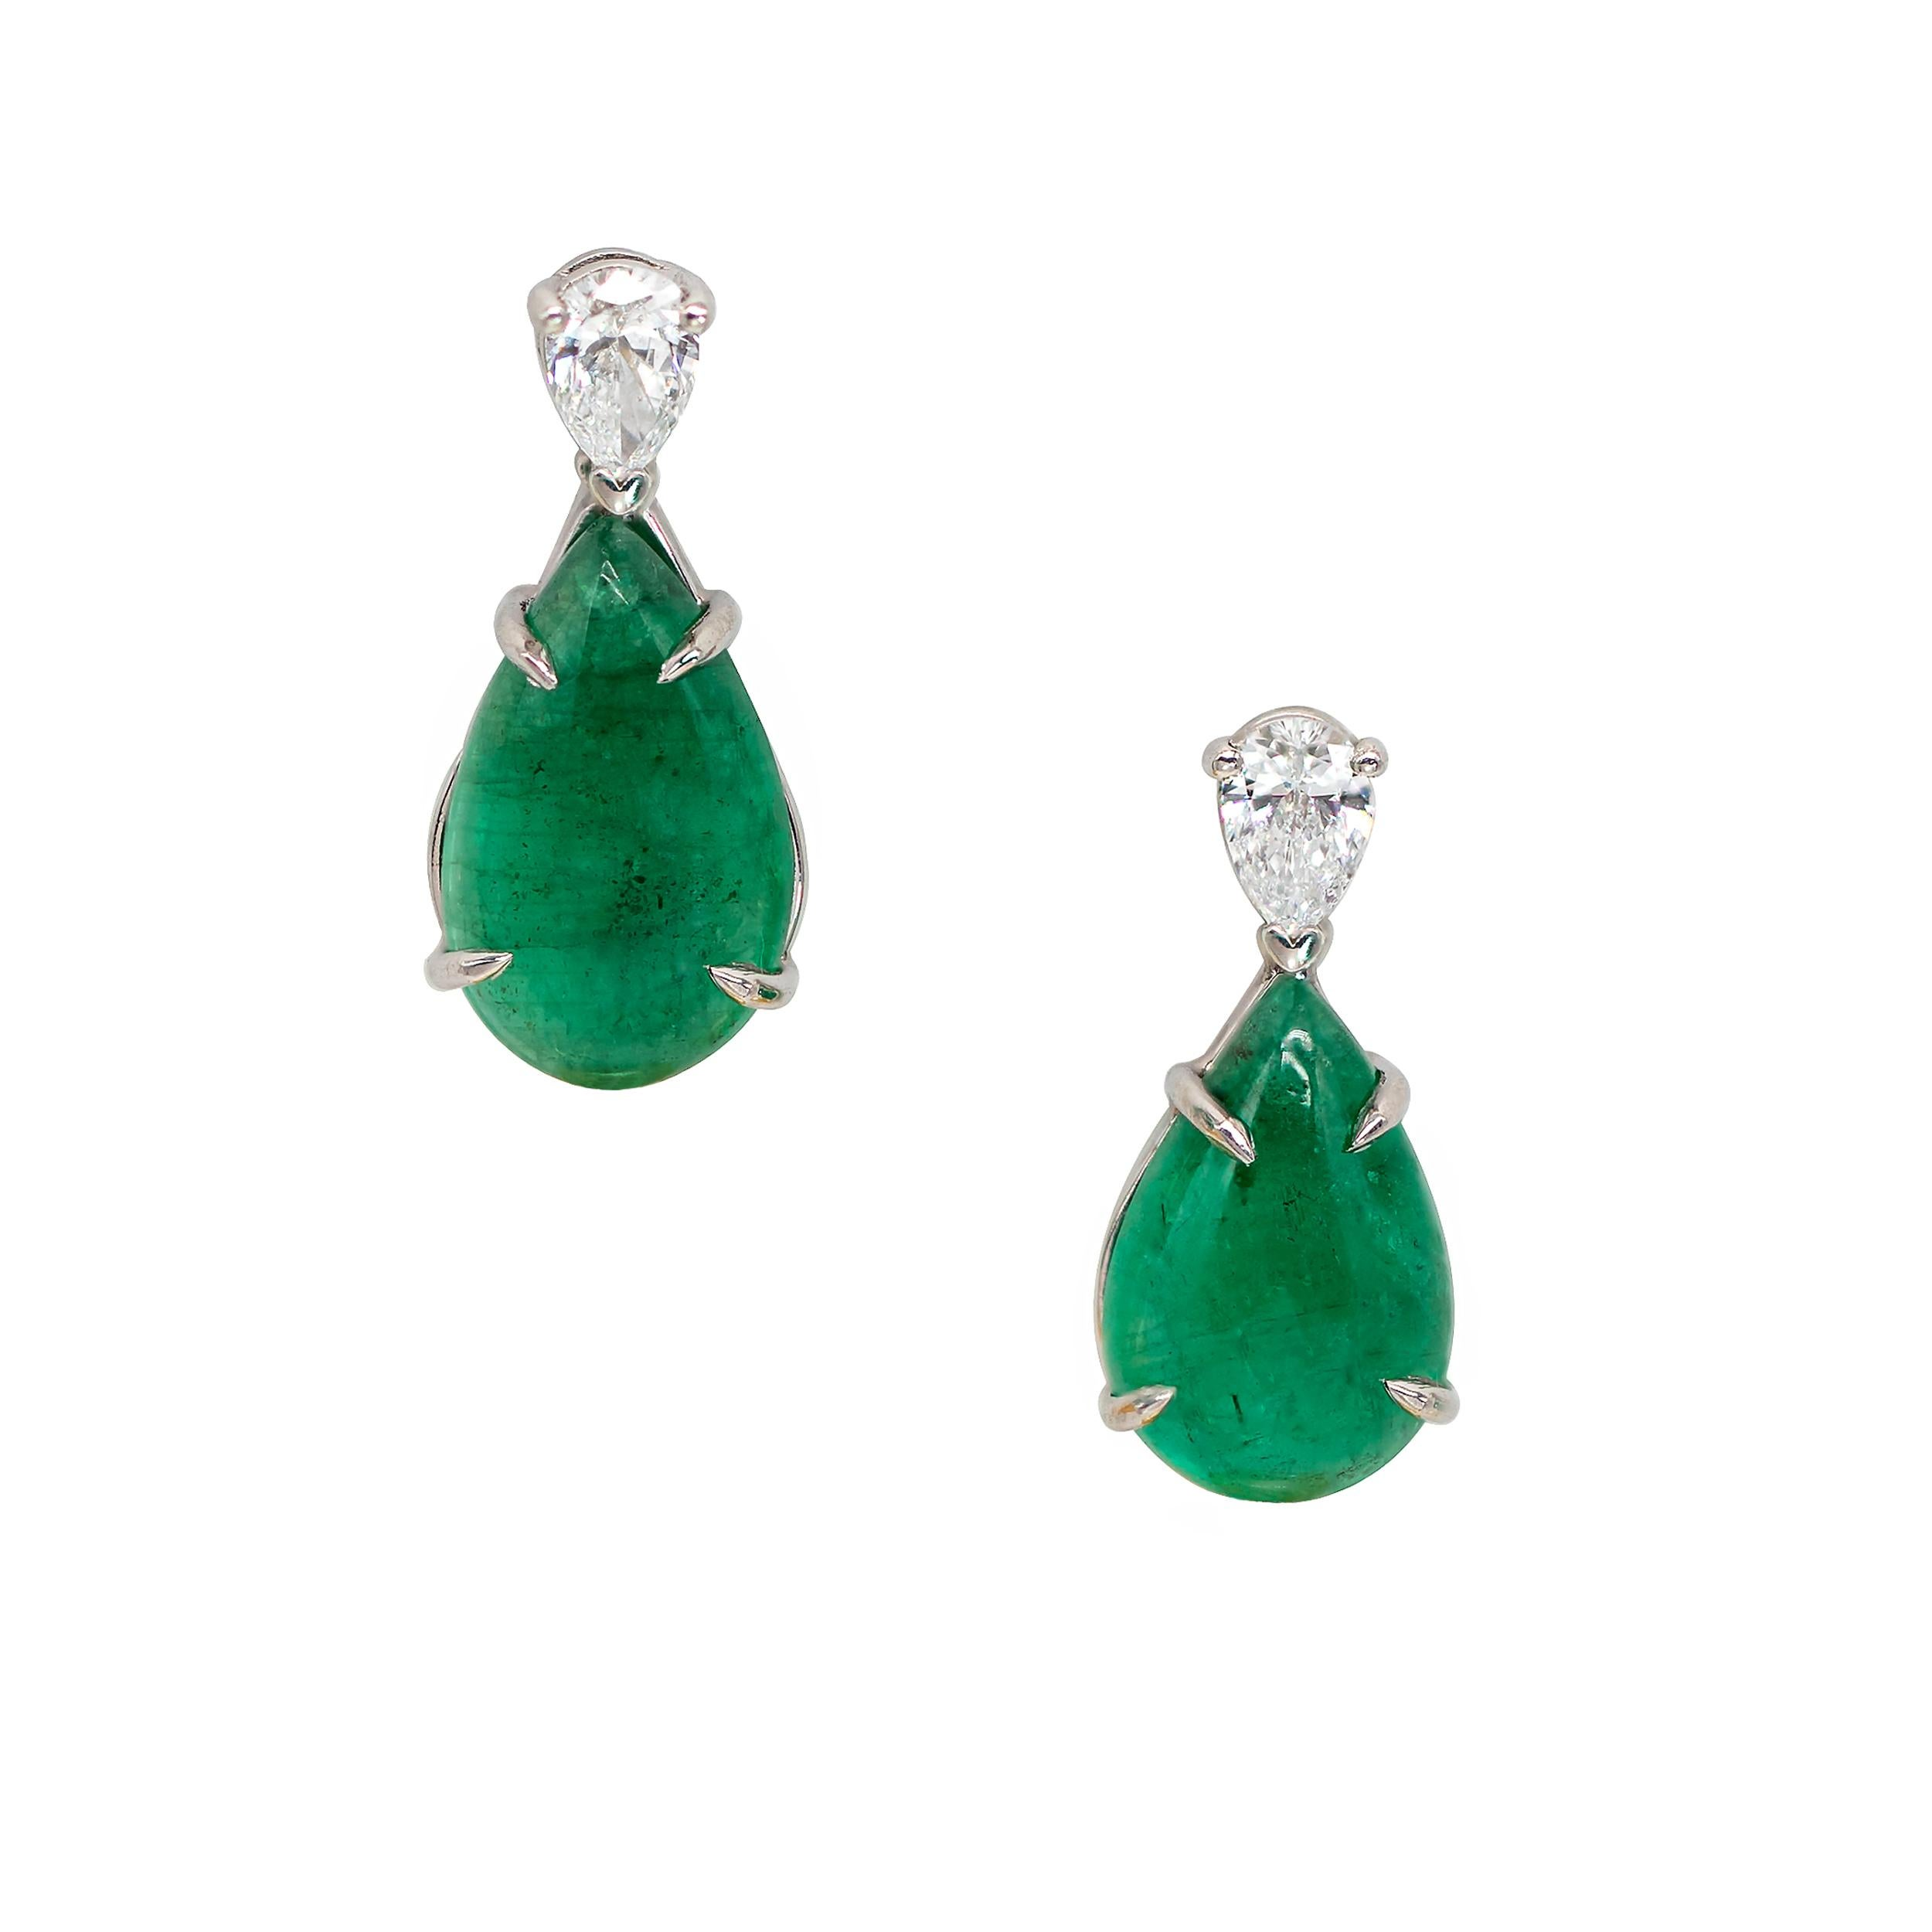 7.02 Carats Pear Shaped Emerald and Pear Shaped Diamond Earrings in Platinum